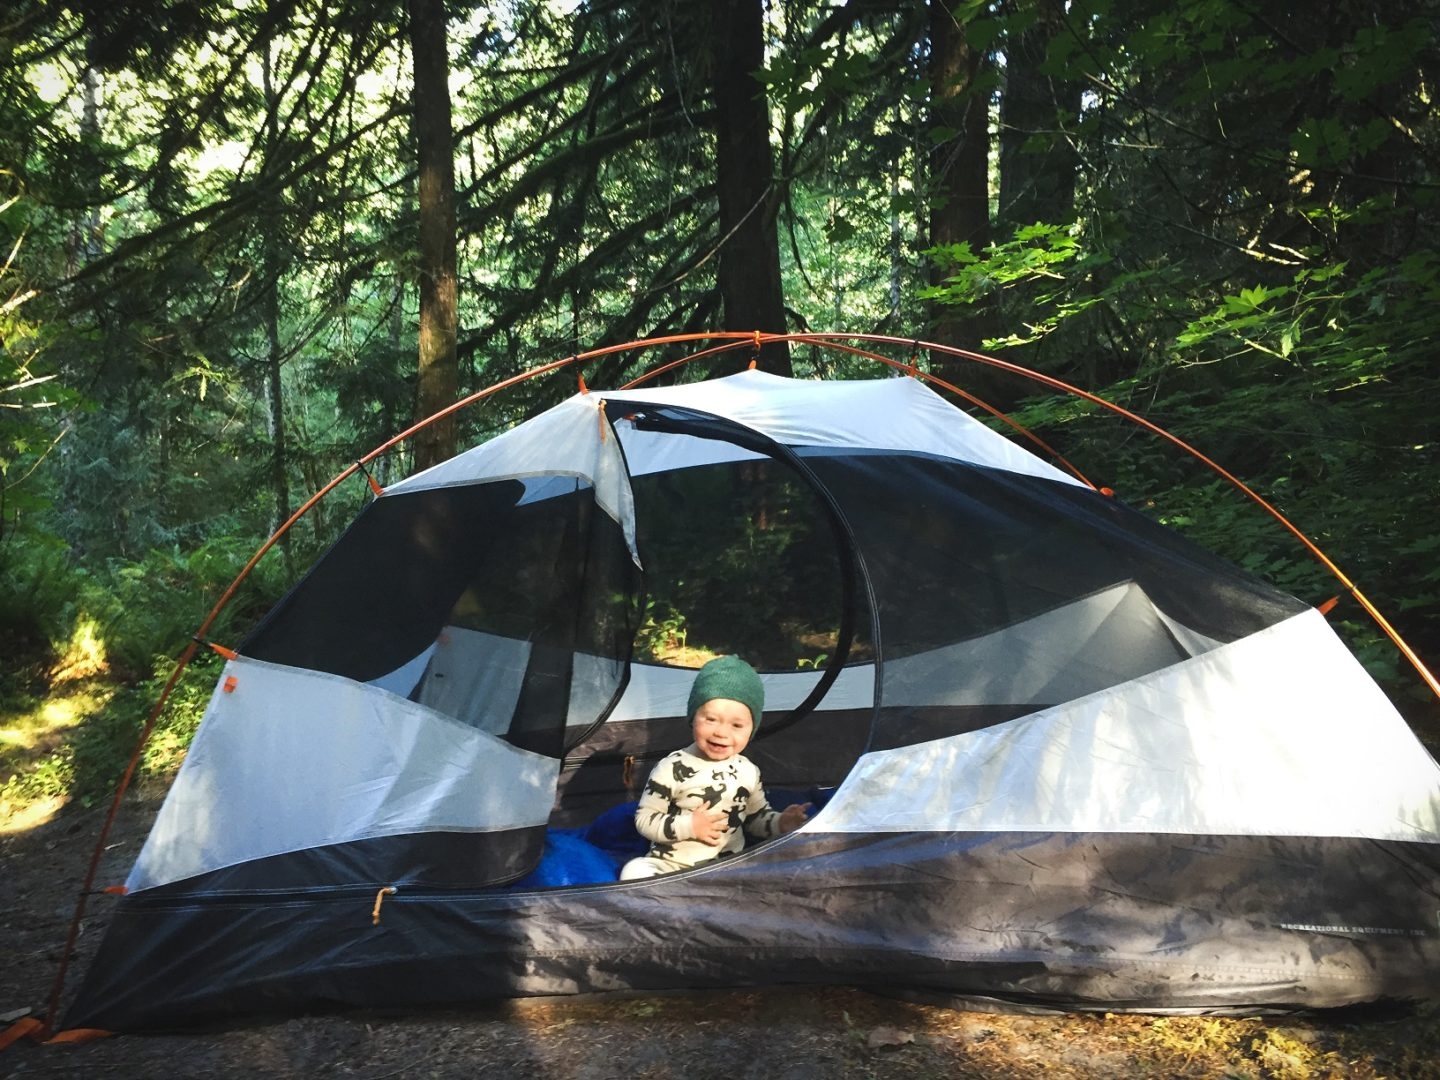 Helpful camping hacks for camping with kids by Vong Hamilton for Hike it Baby